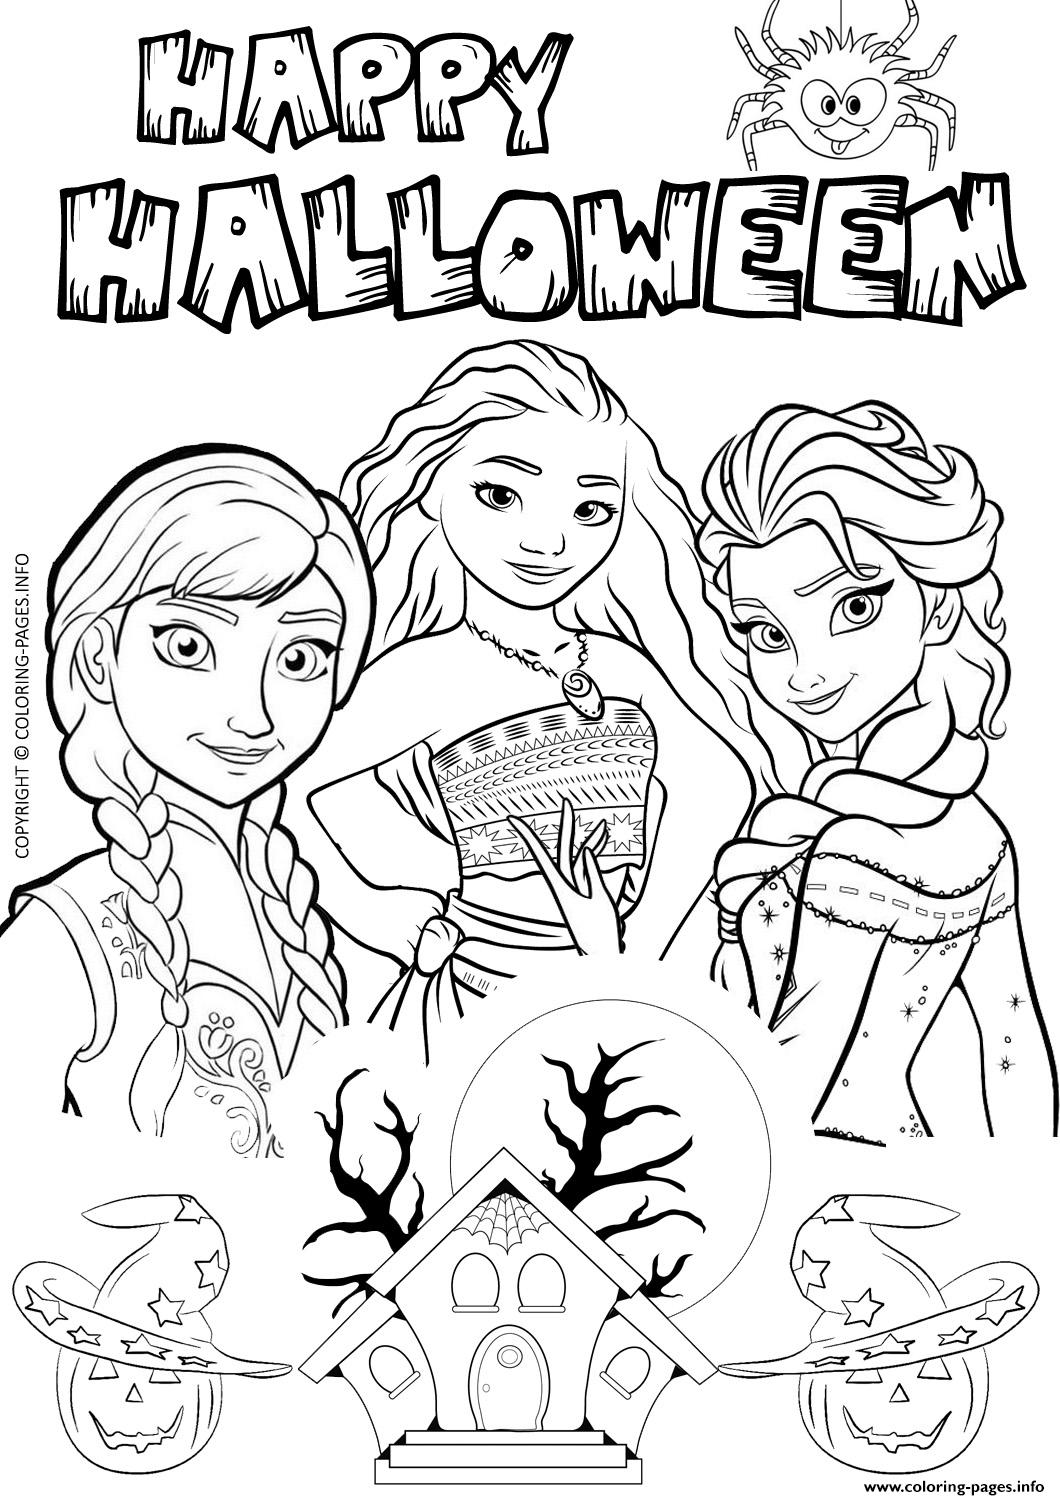 Halloween Frozen Elsa Moana Disney Coloring Pages Printable - Moana-color-pages